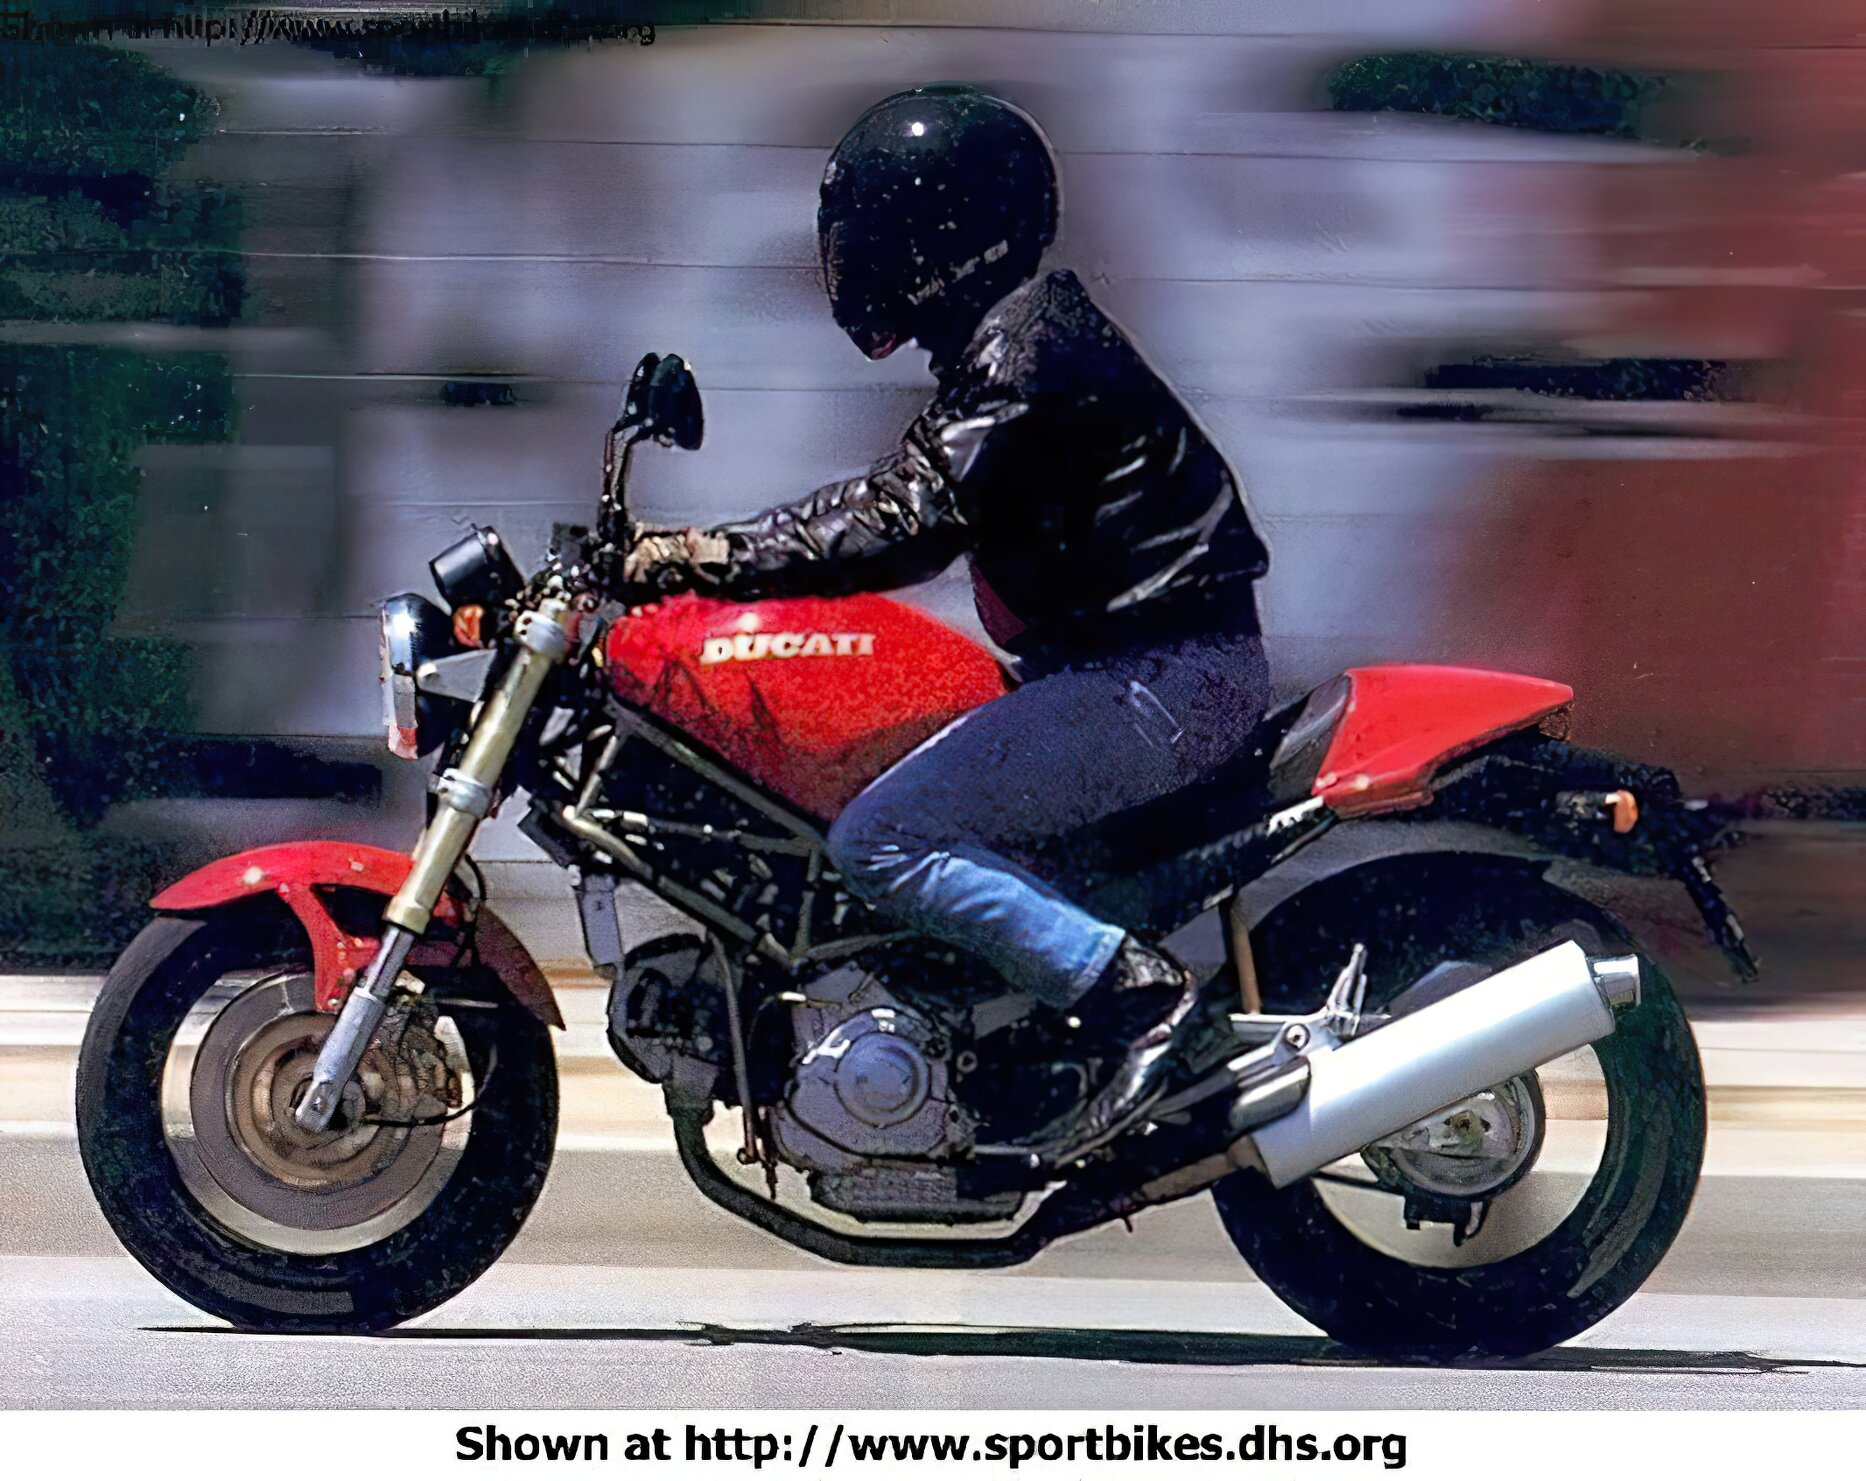 Ducati Monster Models - ID: 470